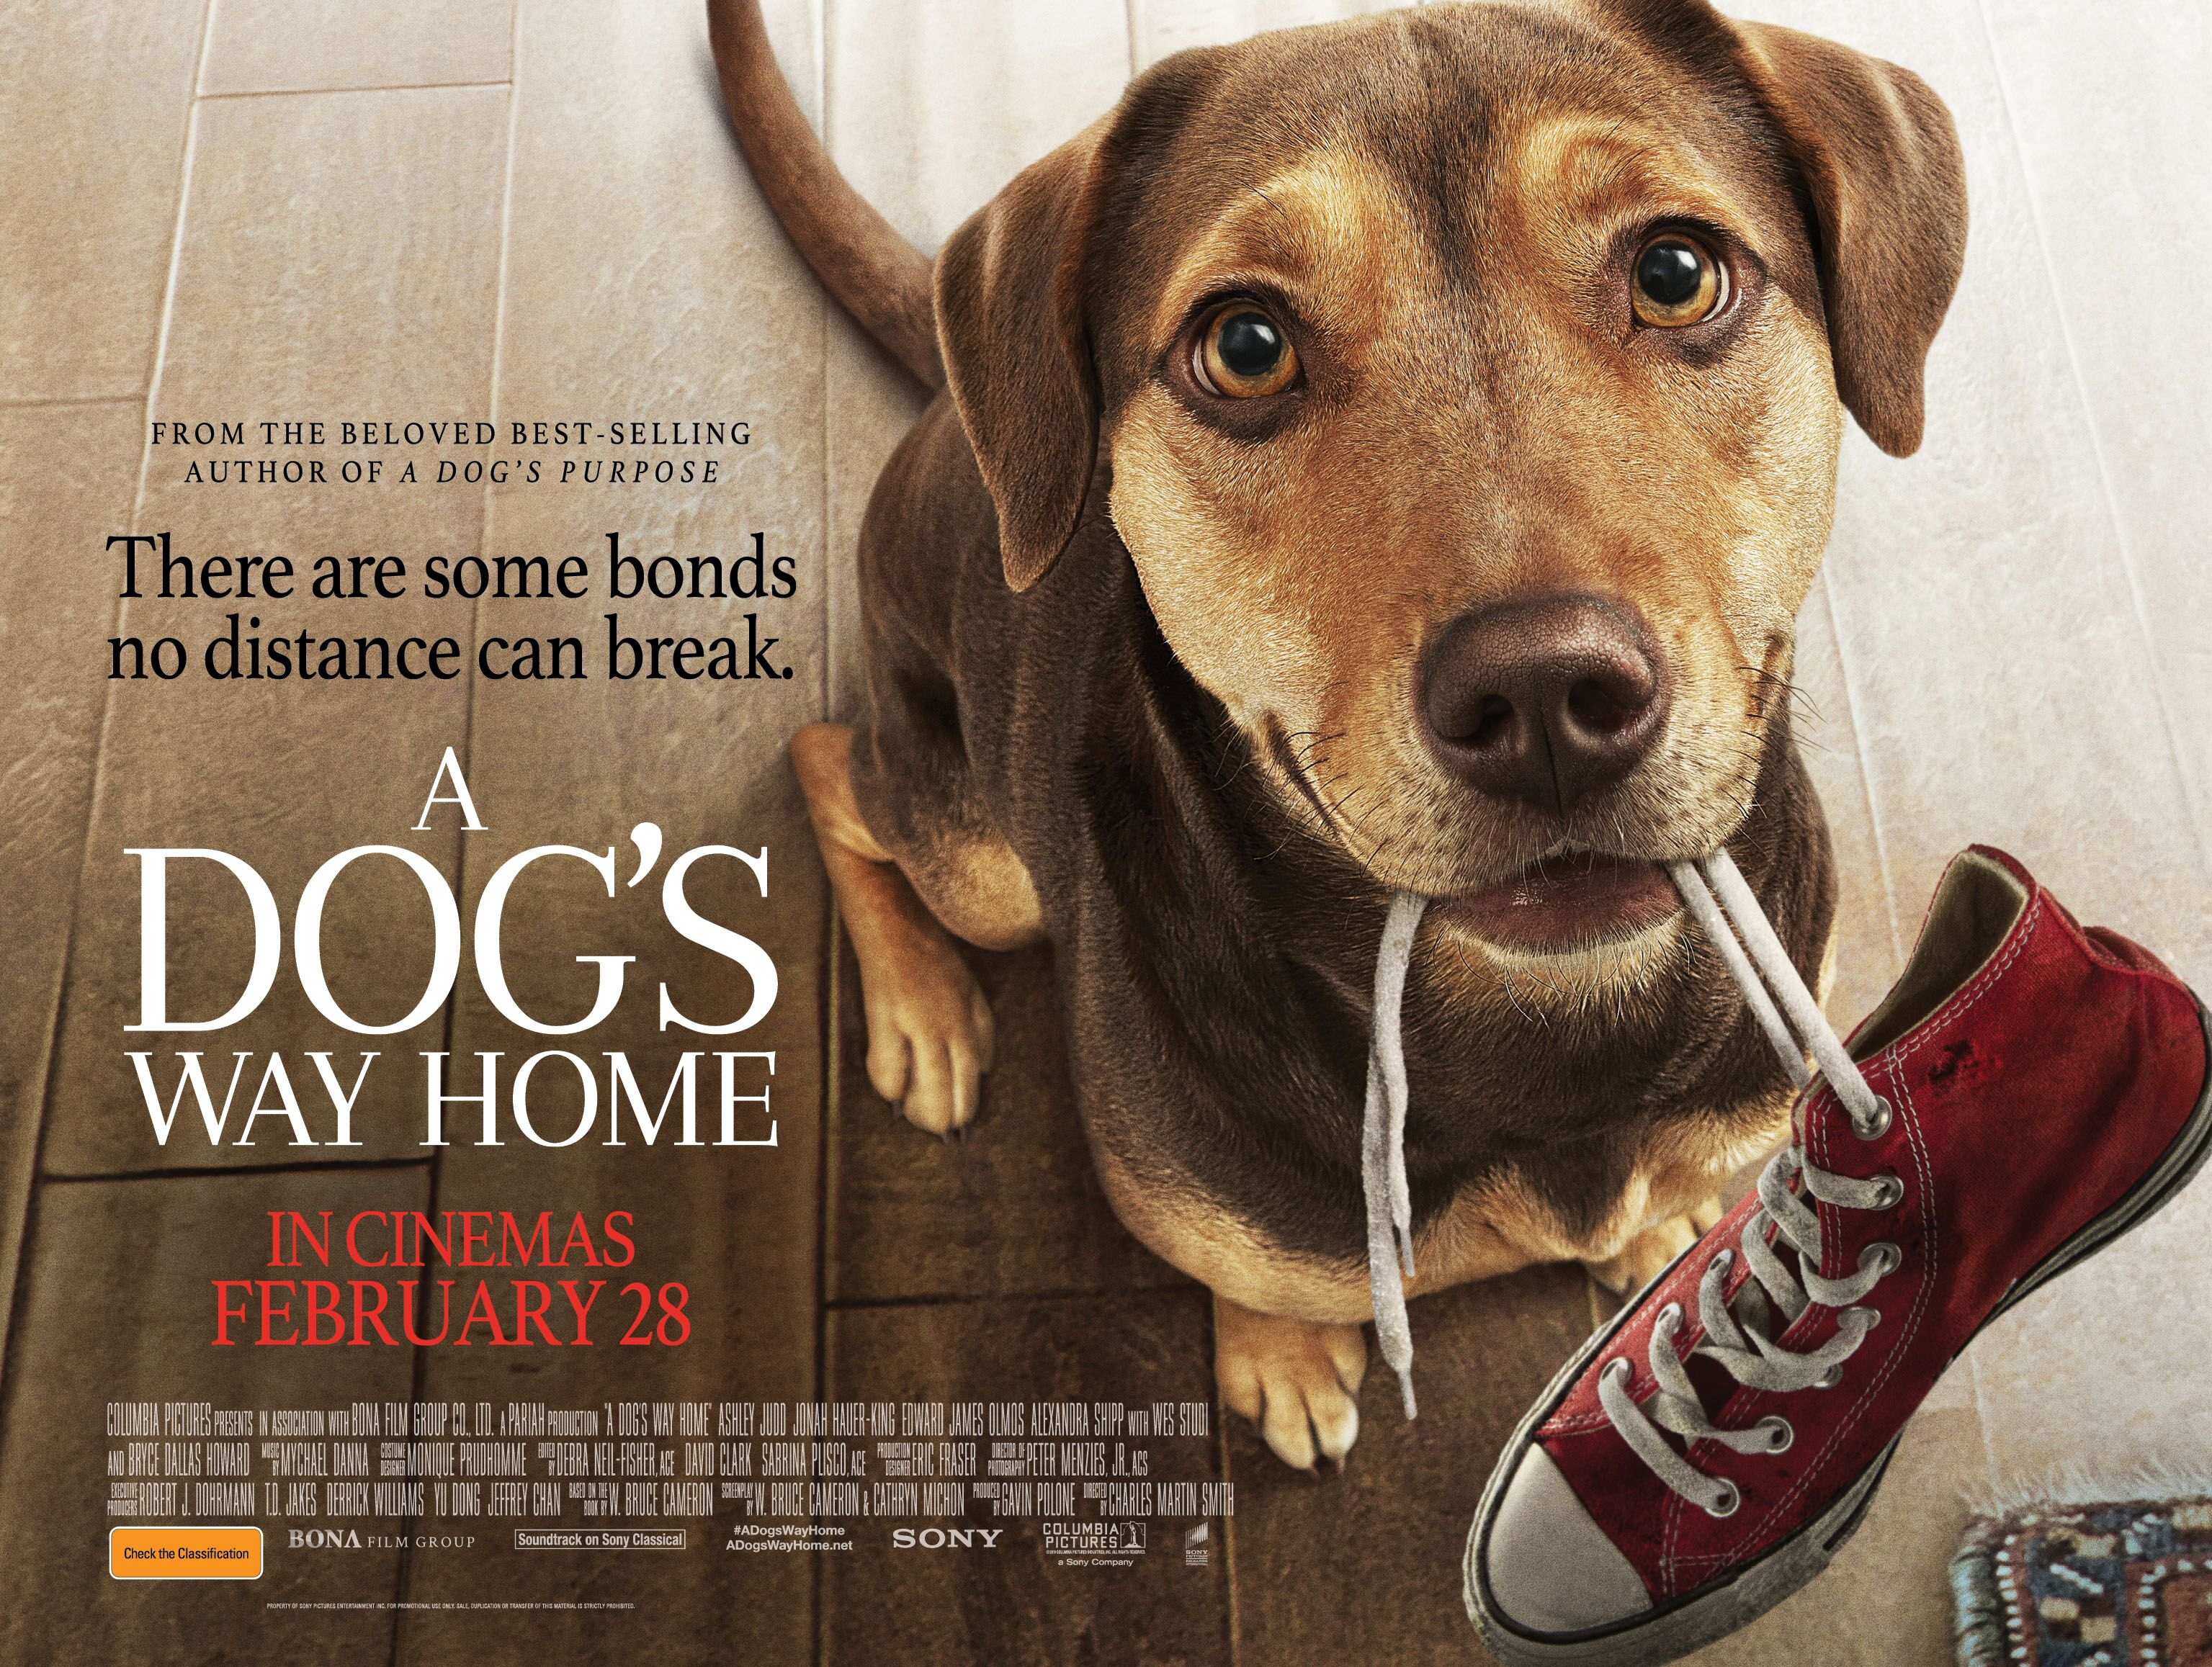 win: a dog's way home movie